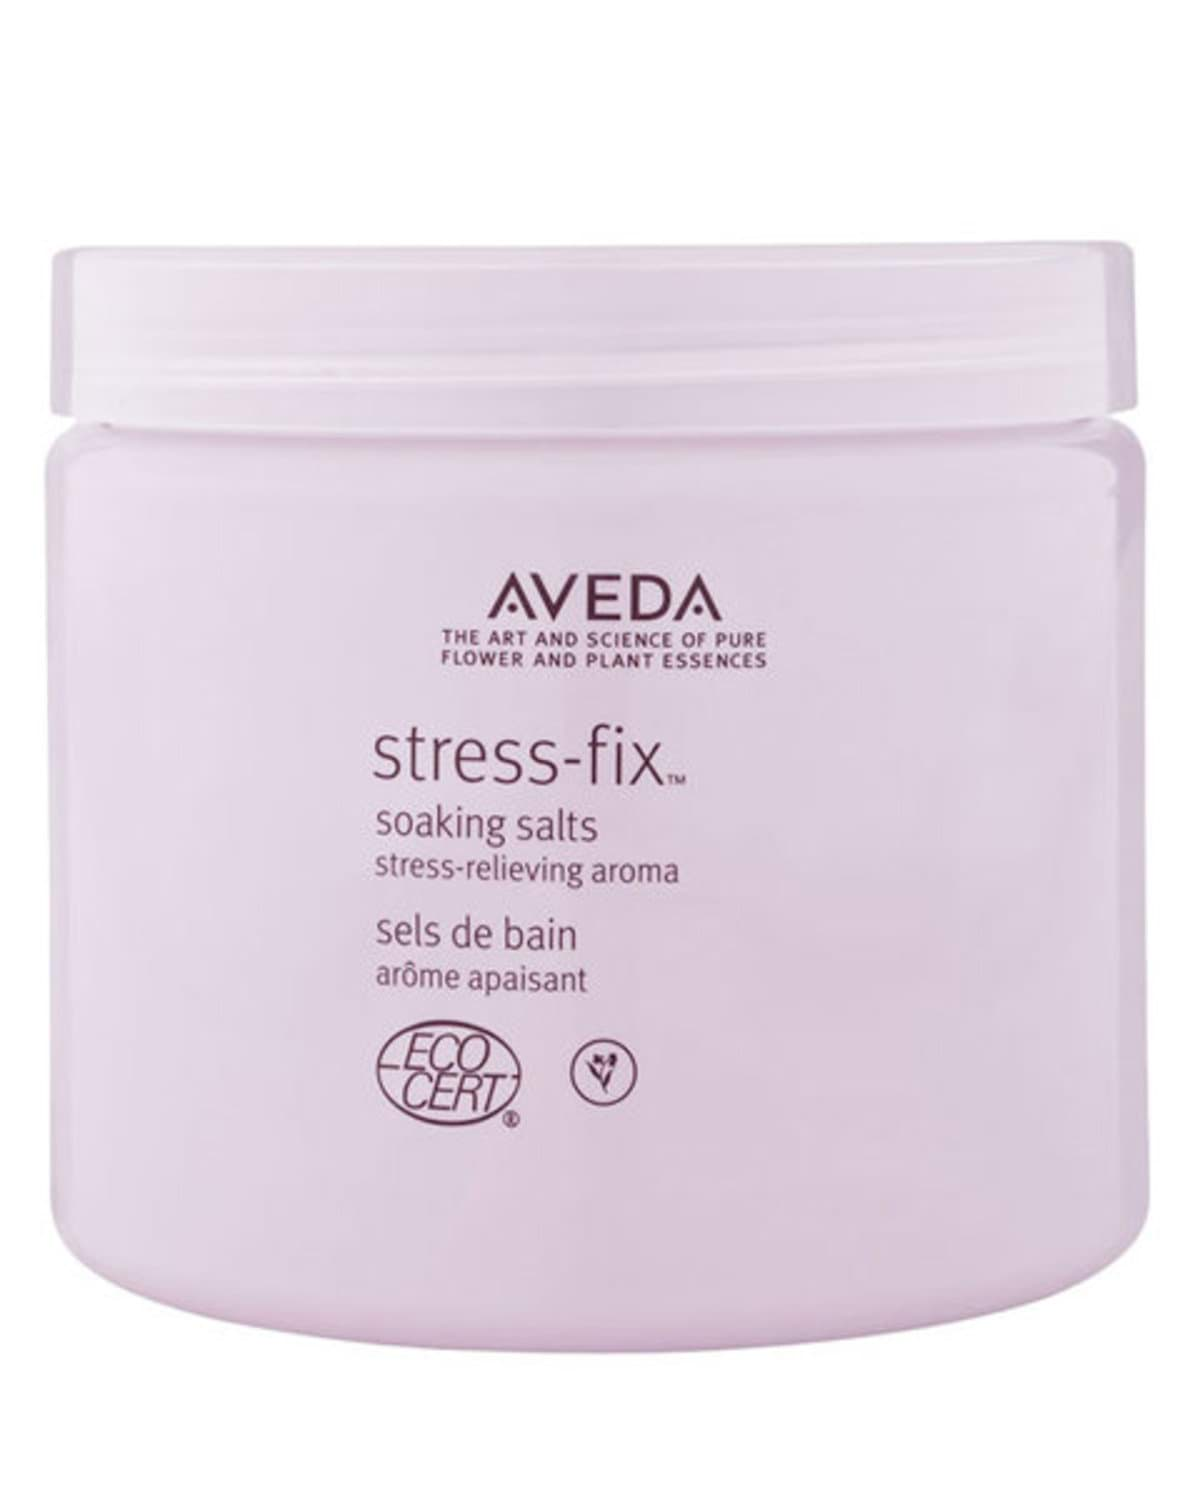 AVEDA STRESS FIX SOAKING